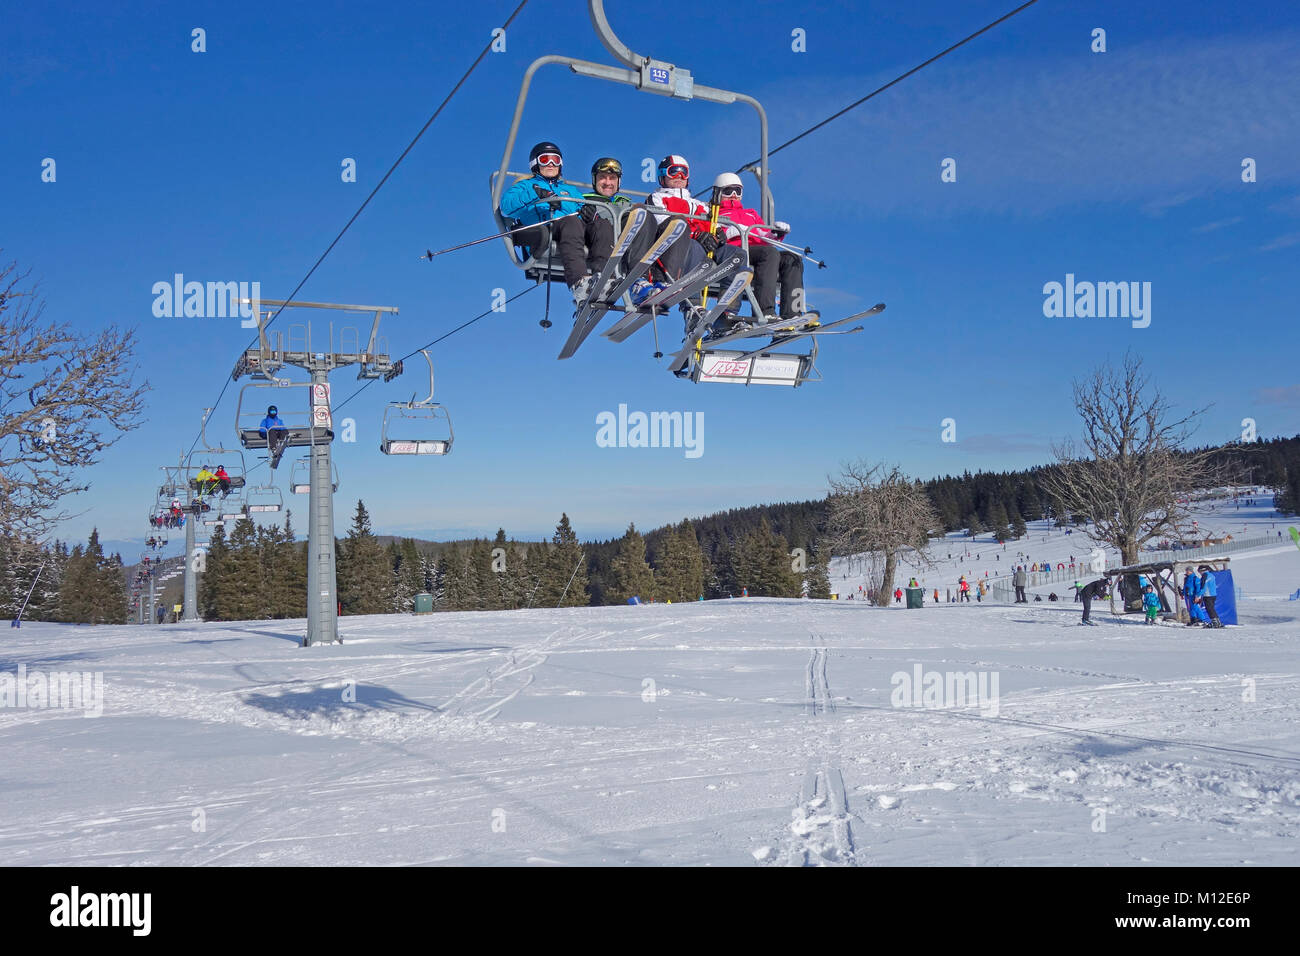 People riding the chair lift. Rogla ski resort, Pohorje, Slovenia. - Stock Image